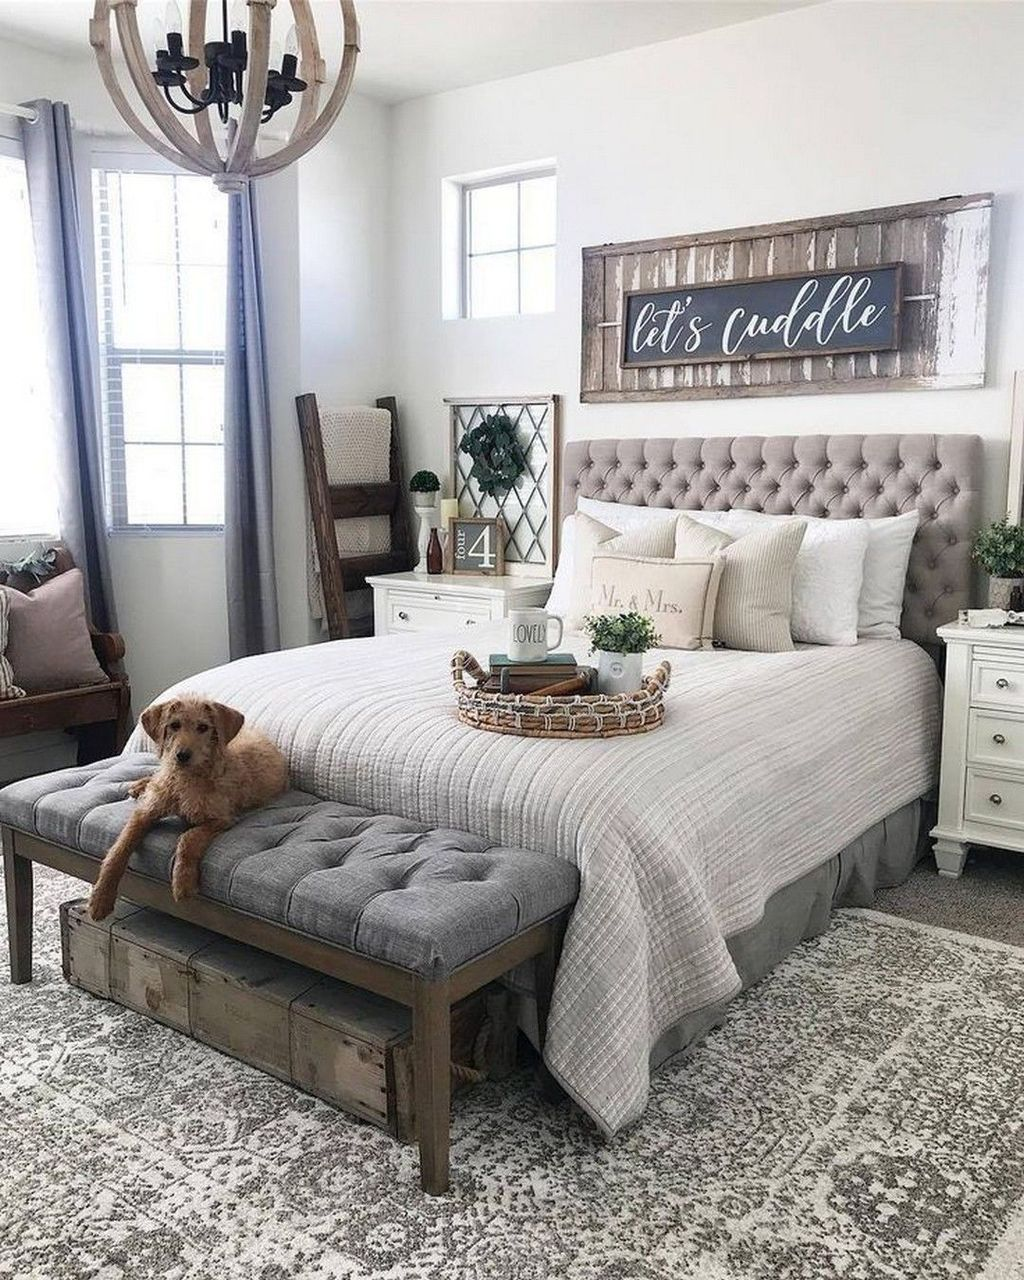 35 Fabulous Farmhouse Style Bedroom Decoration Ideas With Images Rustic Master Bedroom Remodel Bedroom Master Bedrooms Decor